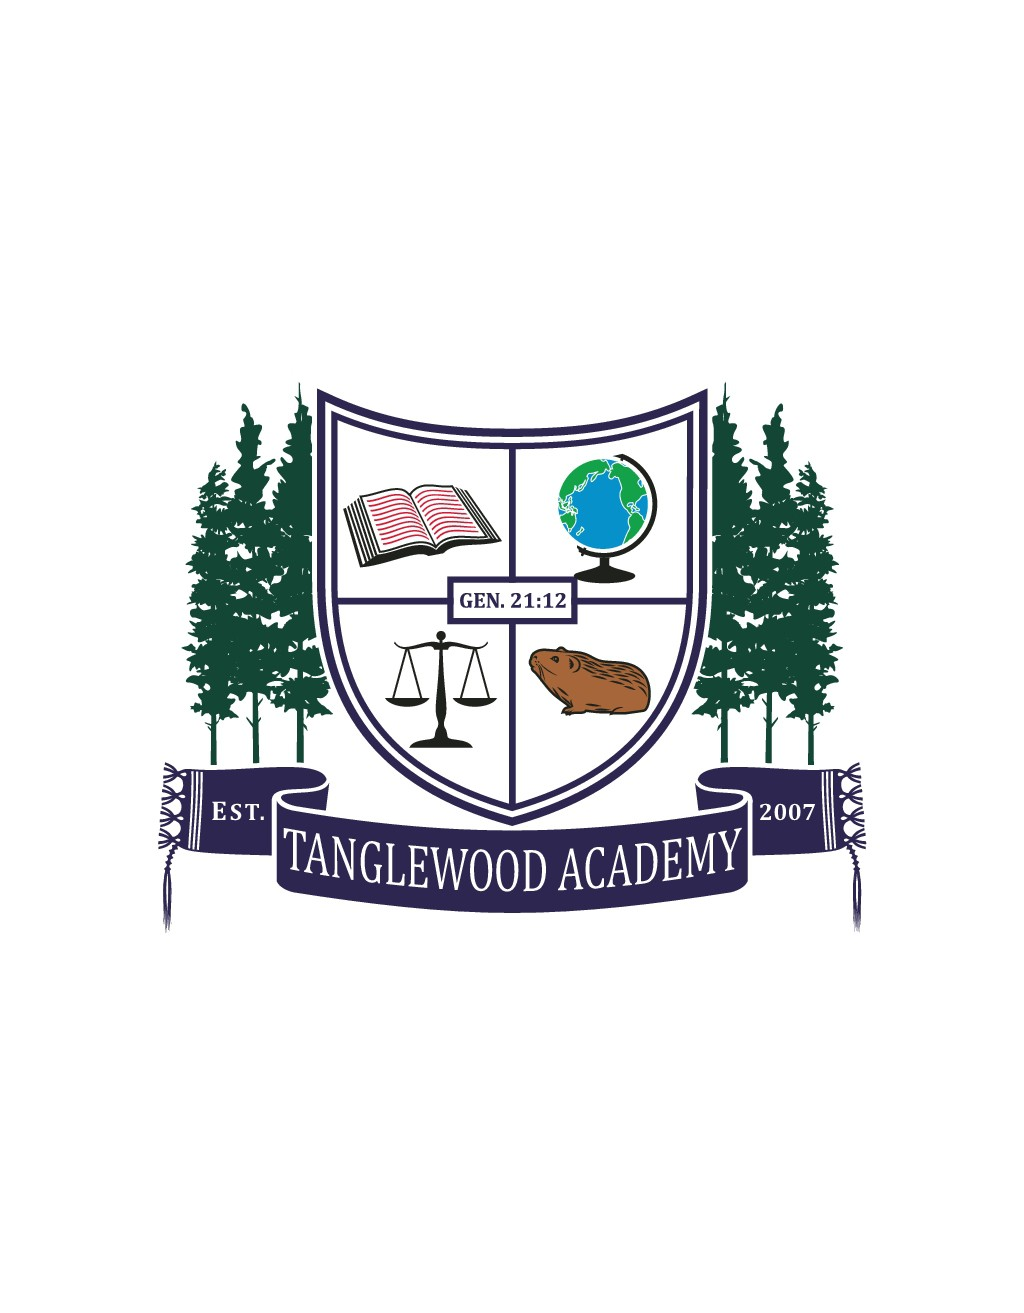 """""""Tanglewood Academy"""" - needs a school crest/coat of arms (now we know what we like)"""